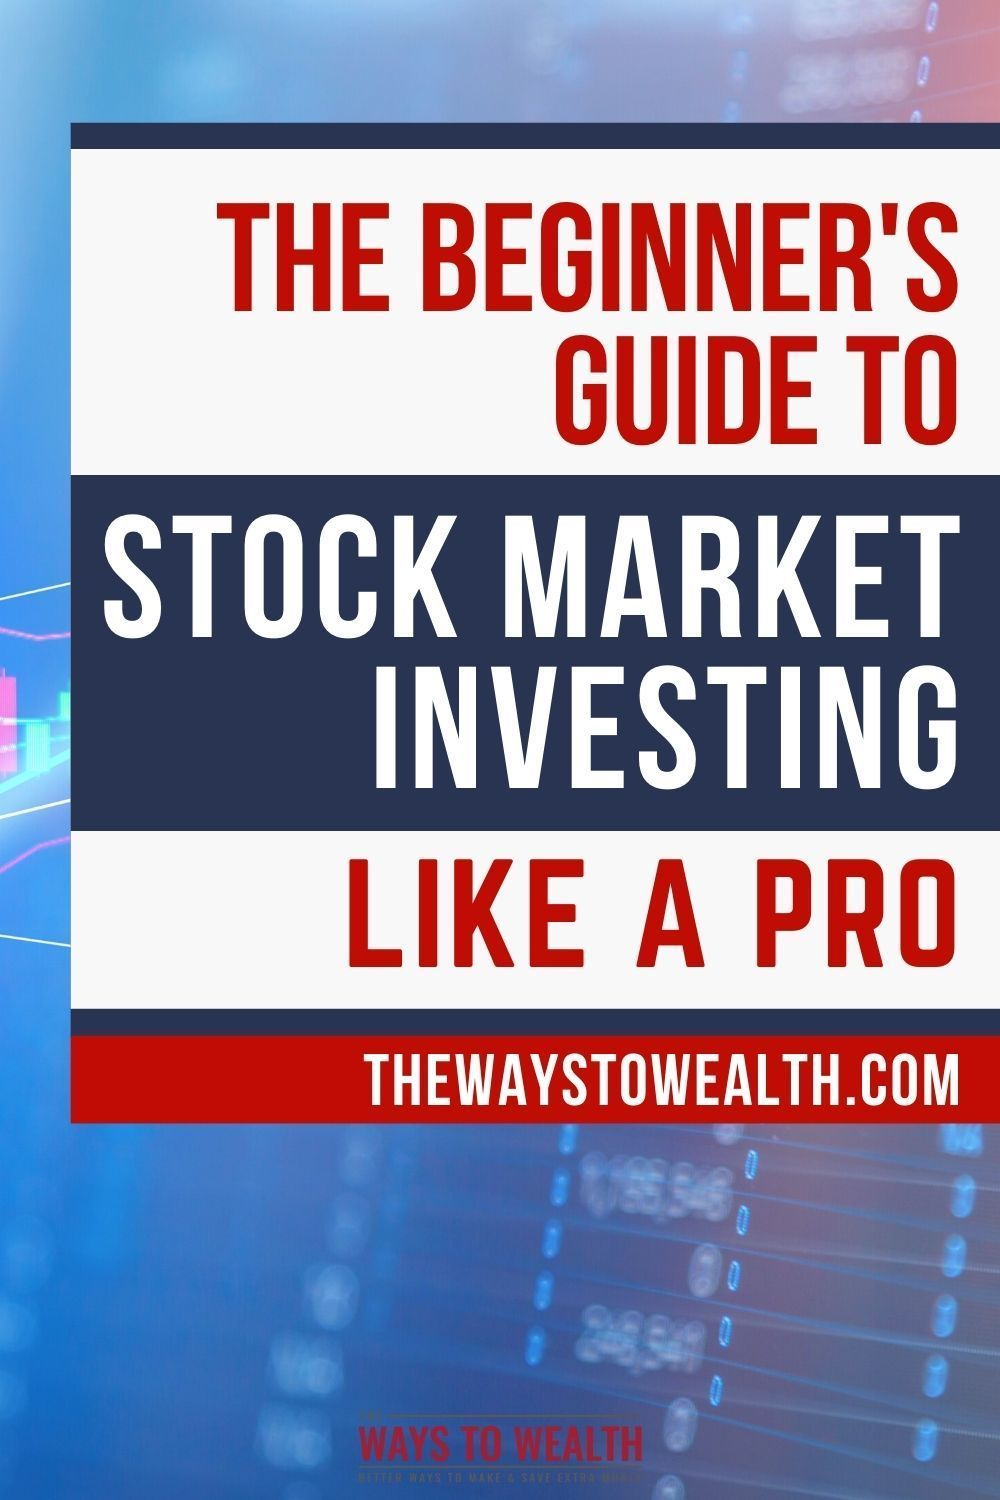 The Beginner S Guide To Stock Market Investing Like A Pro In 2020 Investing Stock Market Stock Market Investing